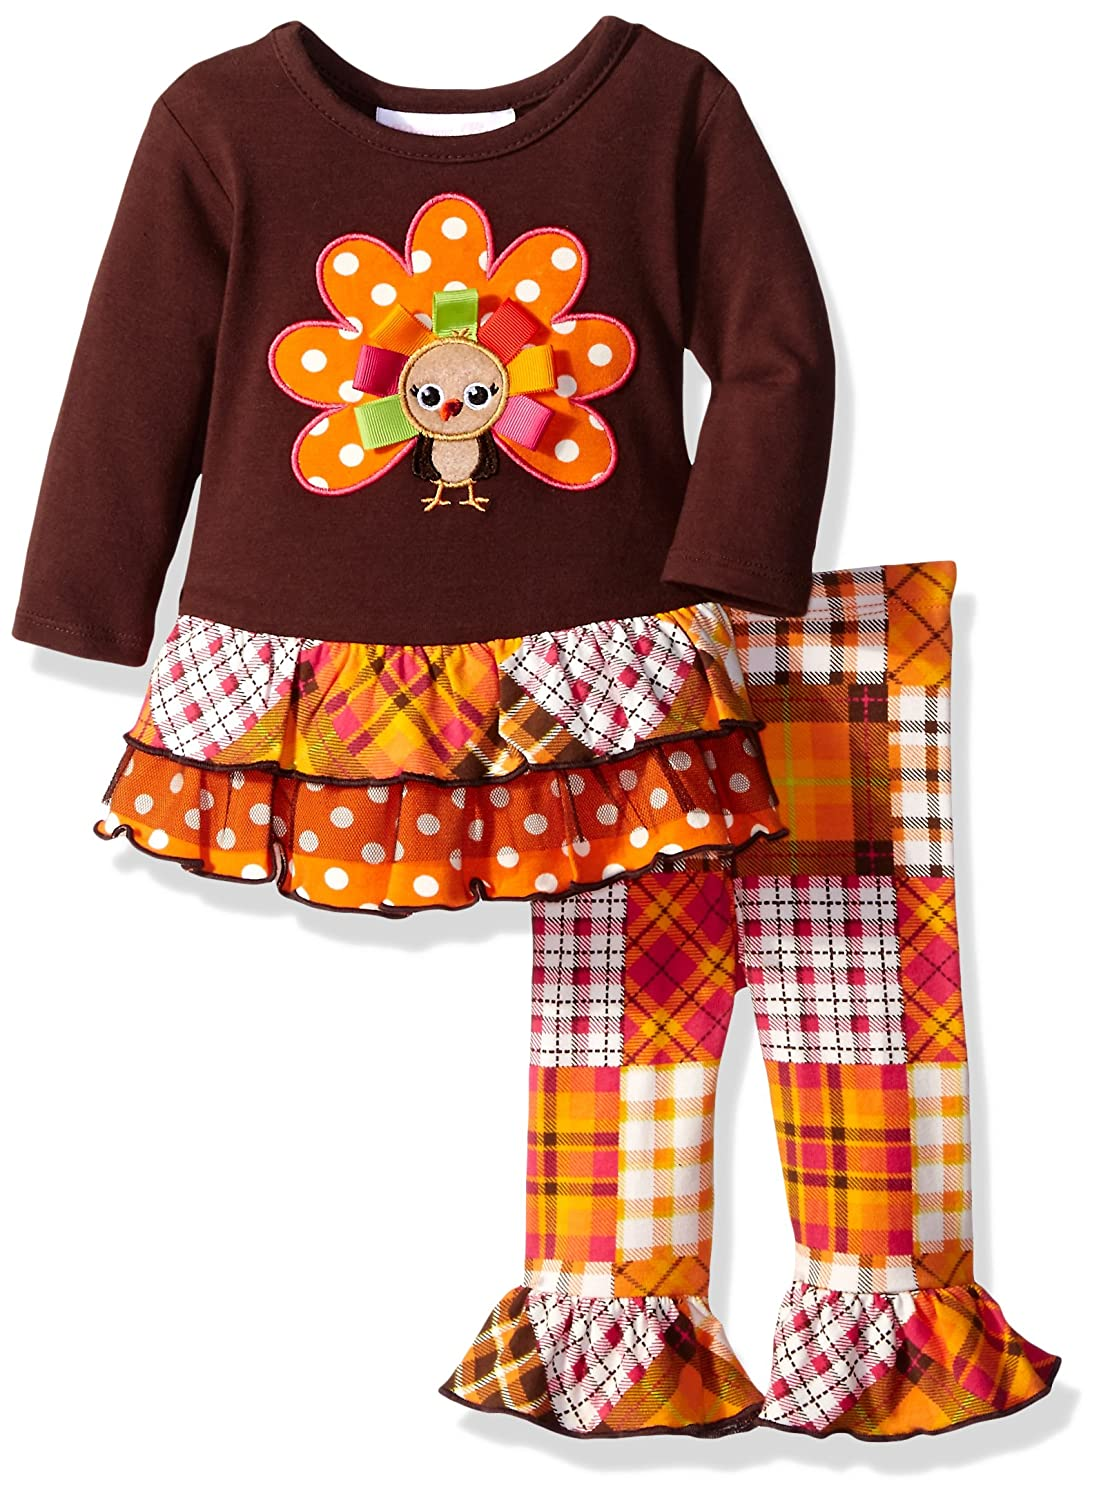 0a1789cd62197 Amazon.com: Bonnie Baby Baby Girls' Thanksgiving Dresses and Legging Set:  Clothing